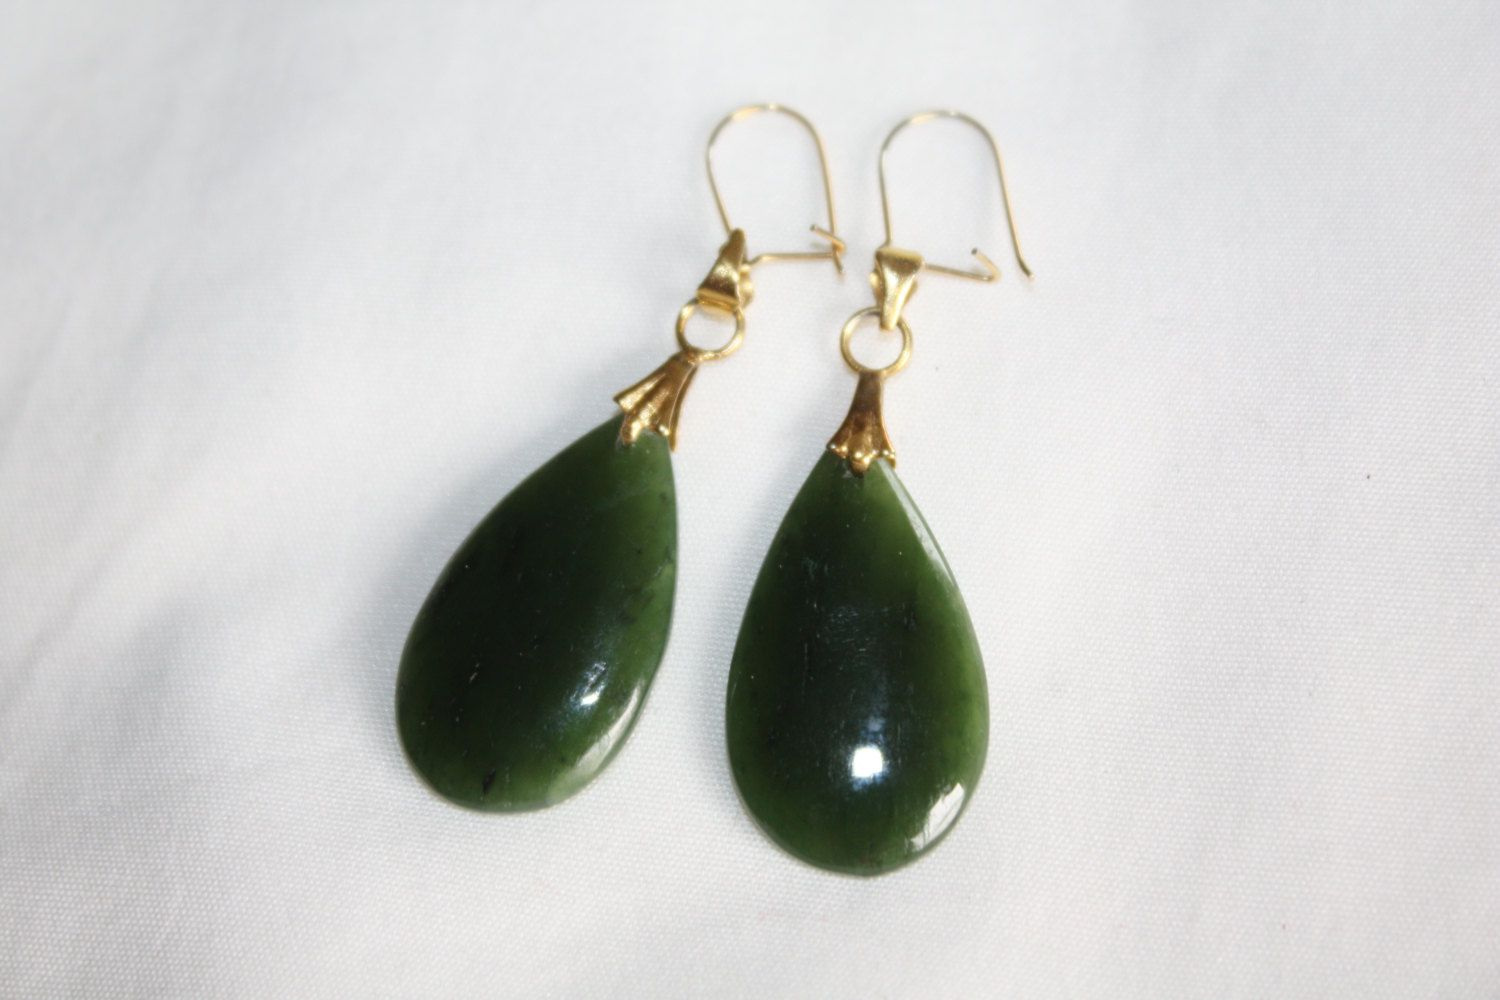 Vintage Jade Earrings Tear Drop Dangle 1980s Estate  Jewelry by patwatty on Etsy